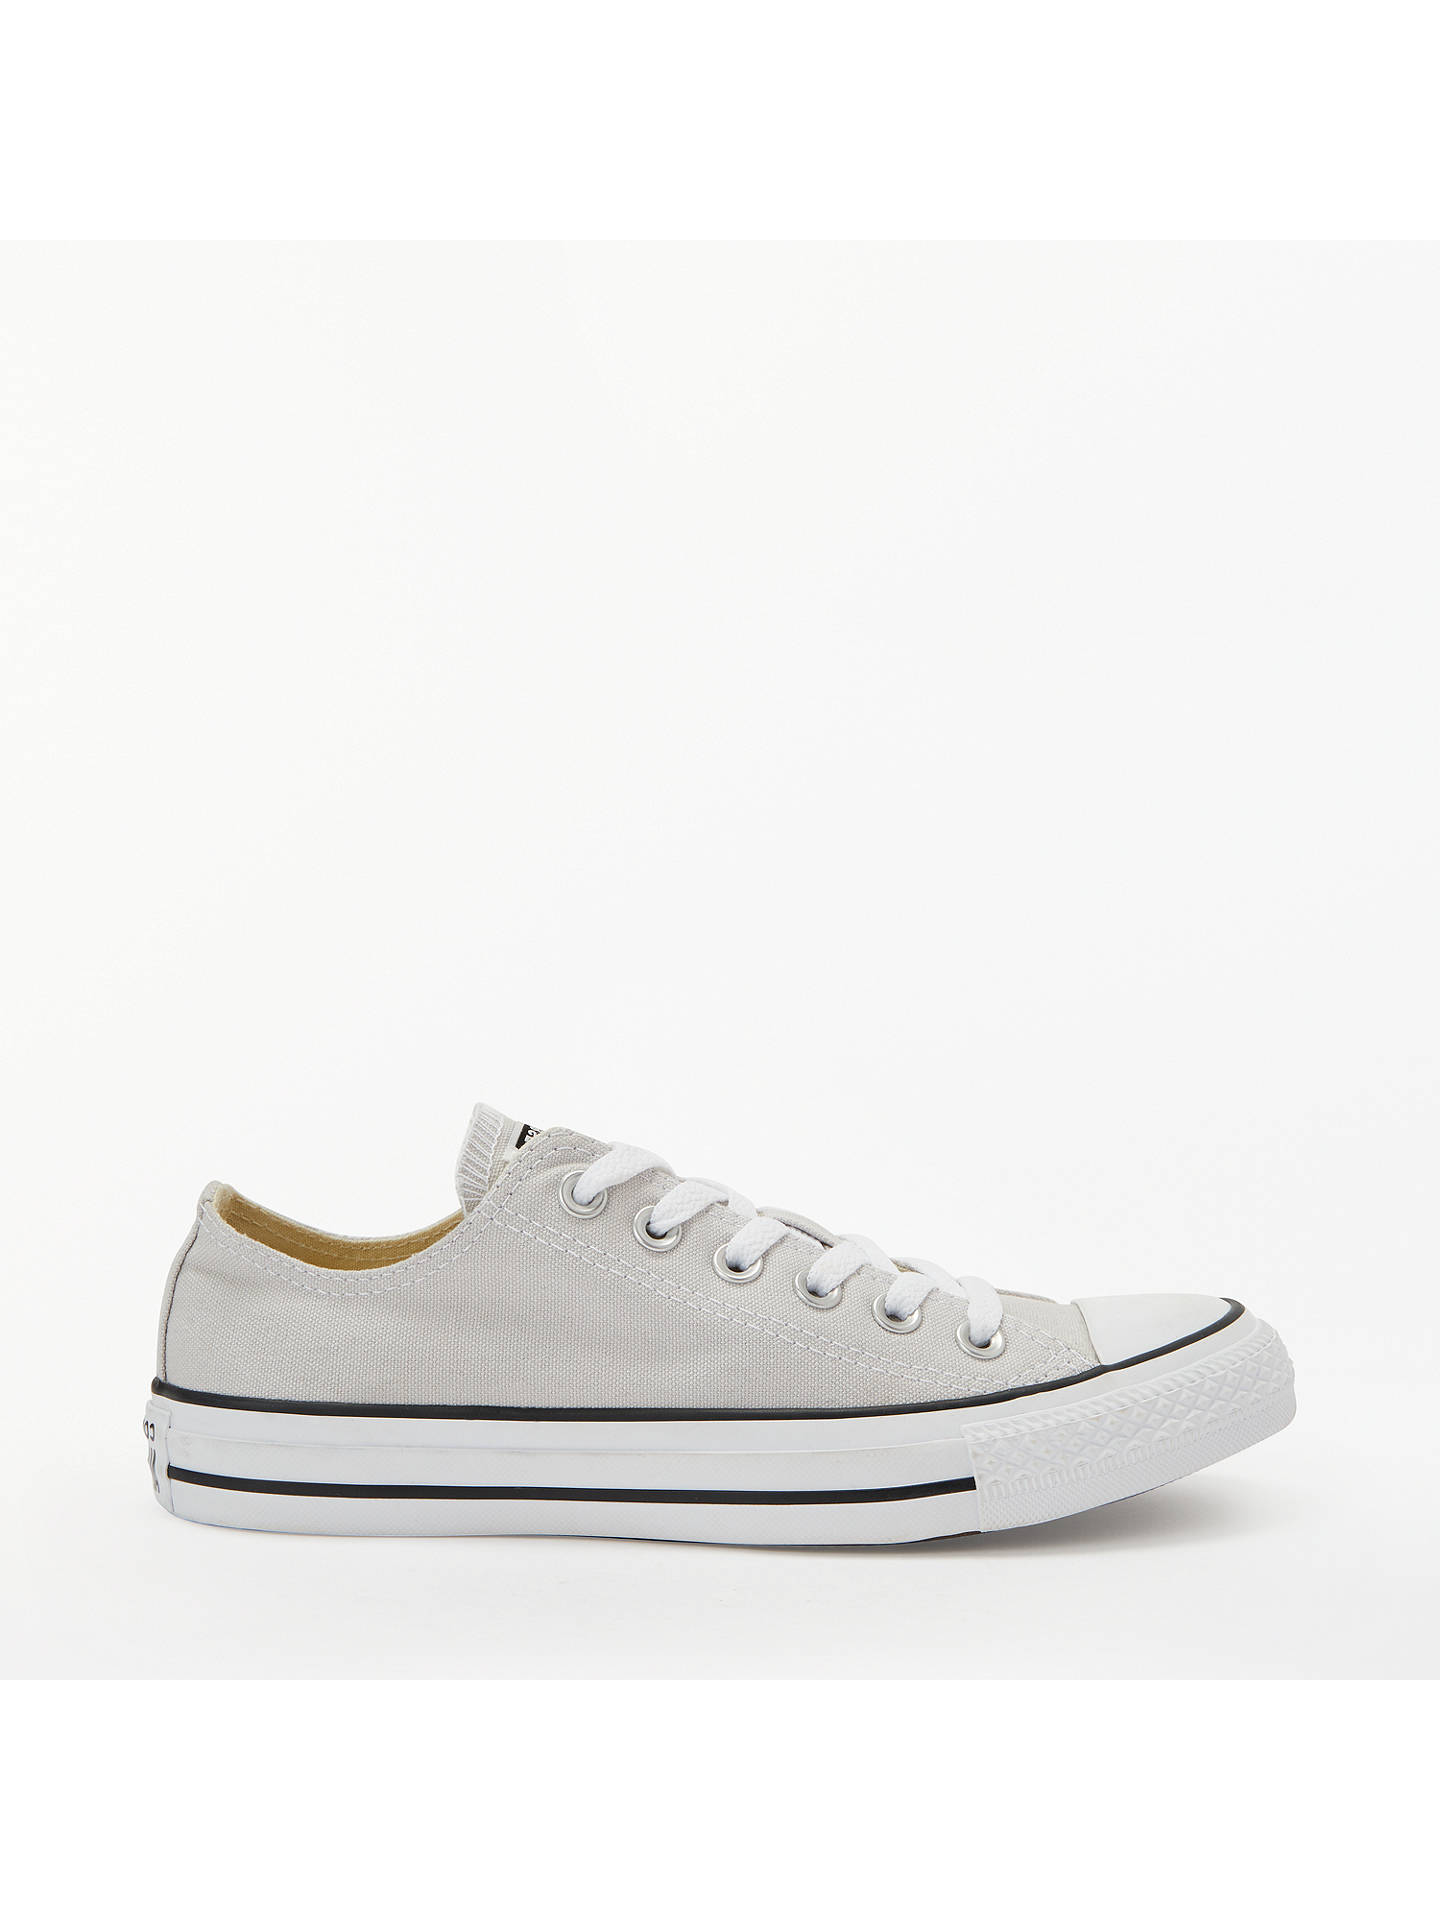 5803833e6cb9 Converse Chuck Taylor All Star Women s Canvas Ox Low-Top Trainers ...